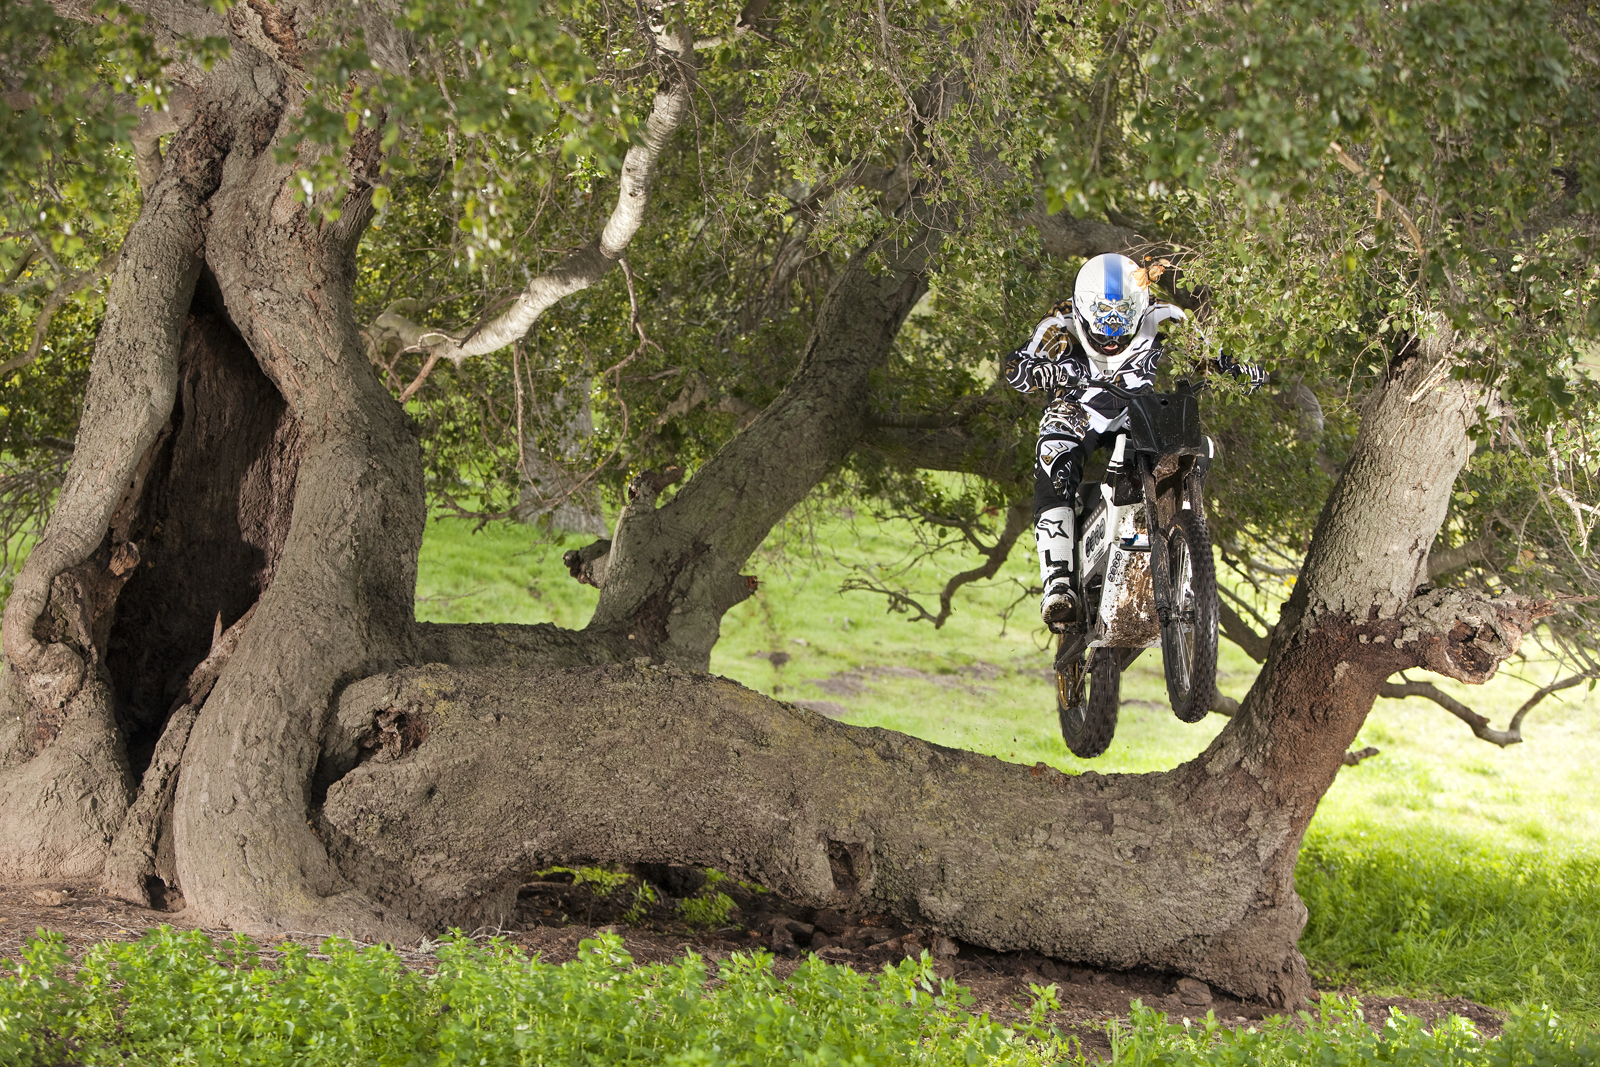 '.2010 Zero X Electric Motorcycle: Zaca Station - Tree Jump.'